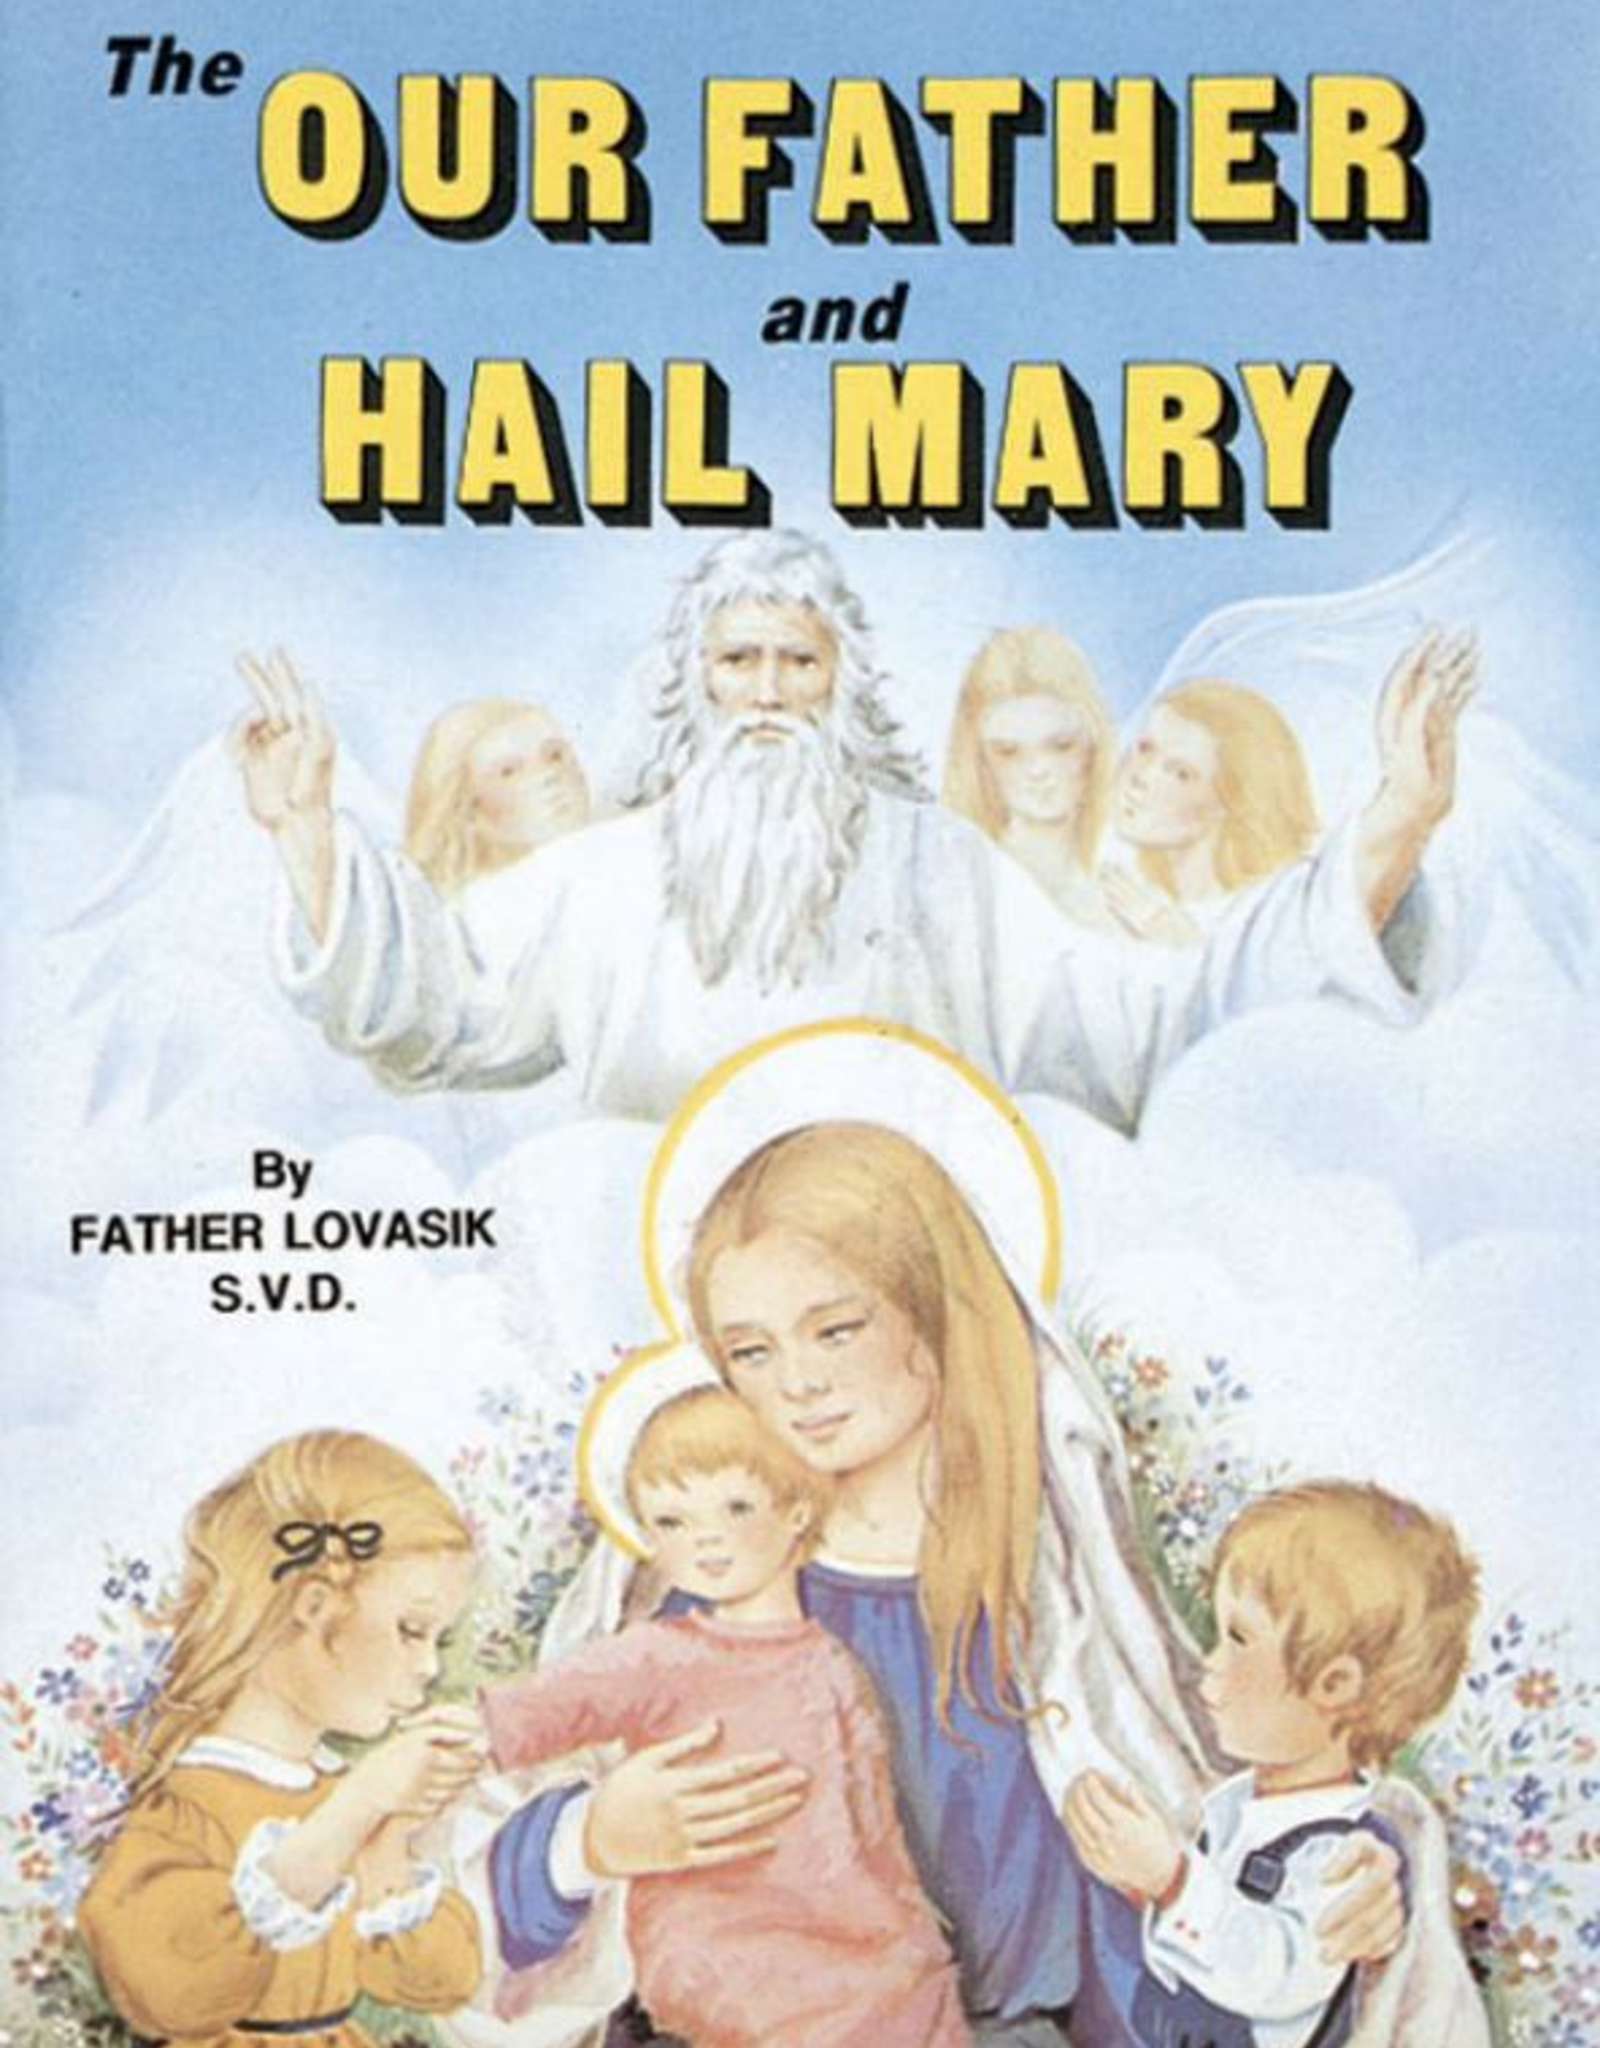 Catholic Book Publishing The Our Father and Hail Mary, by Rev. Lawrence Lovasik